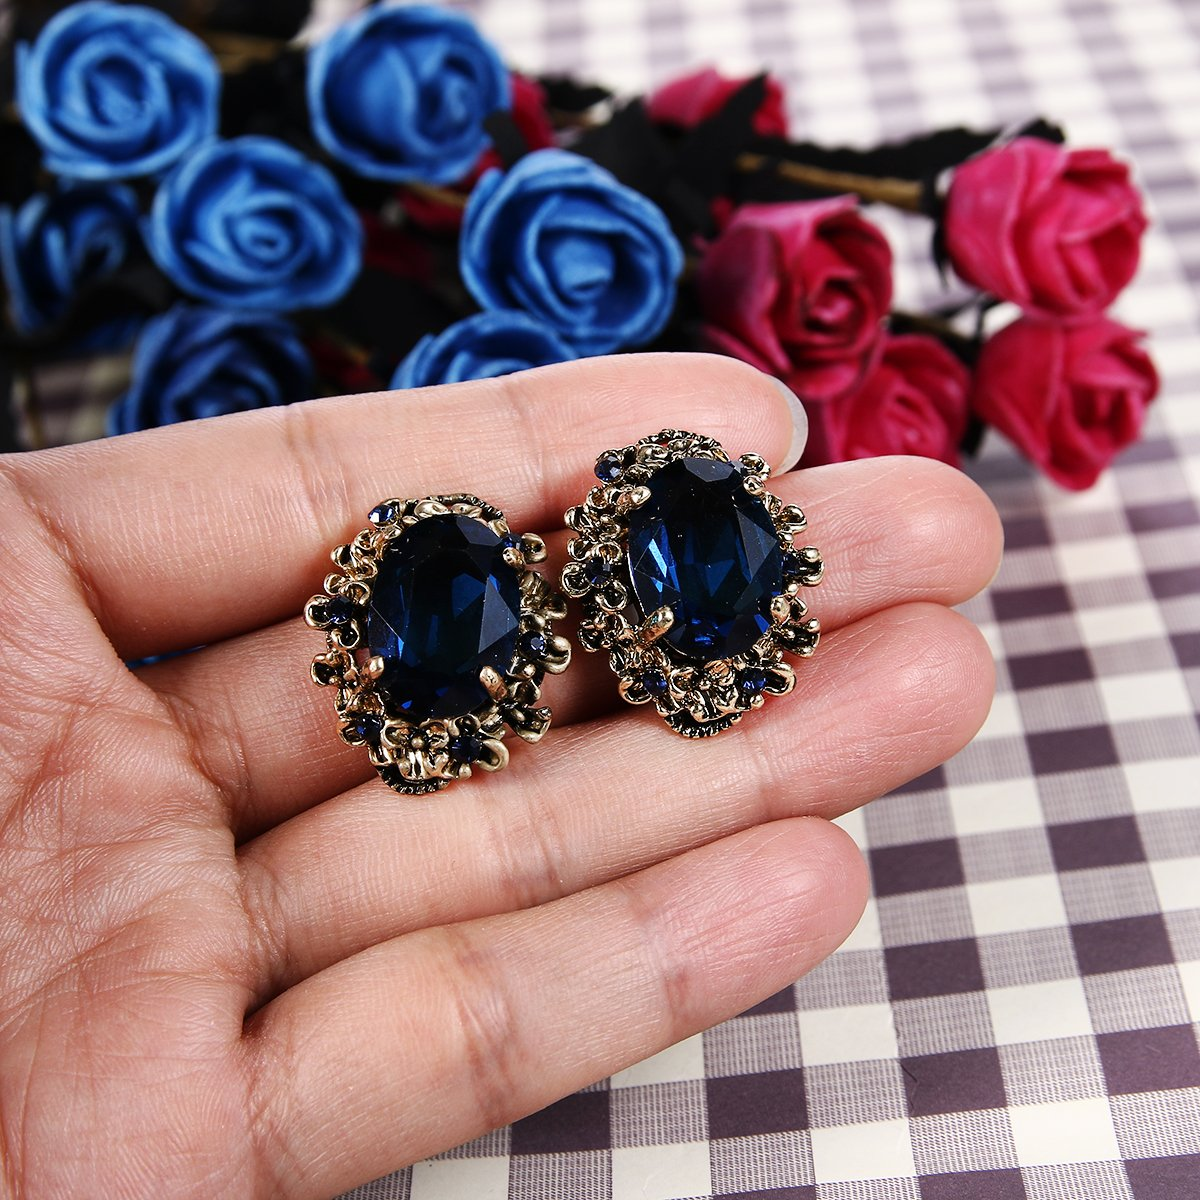 BriLove Antique-Gold-Toned Stud Earrings Women's Victorian Style Crystal Floral Scroll Cameo Inspired Oval Earrings Sapphire Color by BriLove (Image #4)